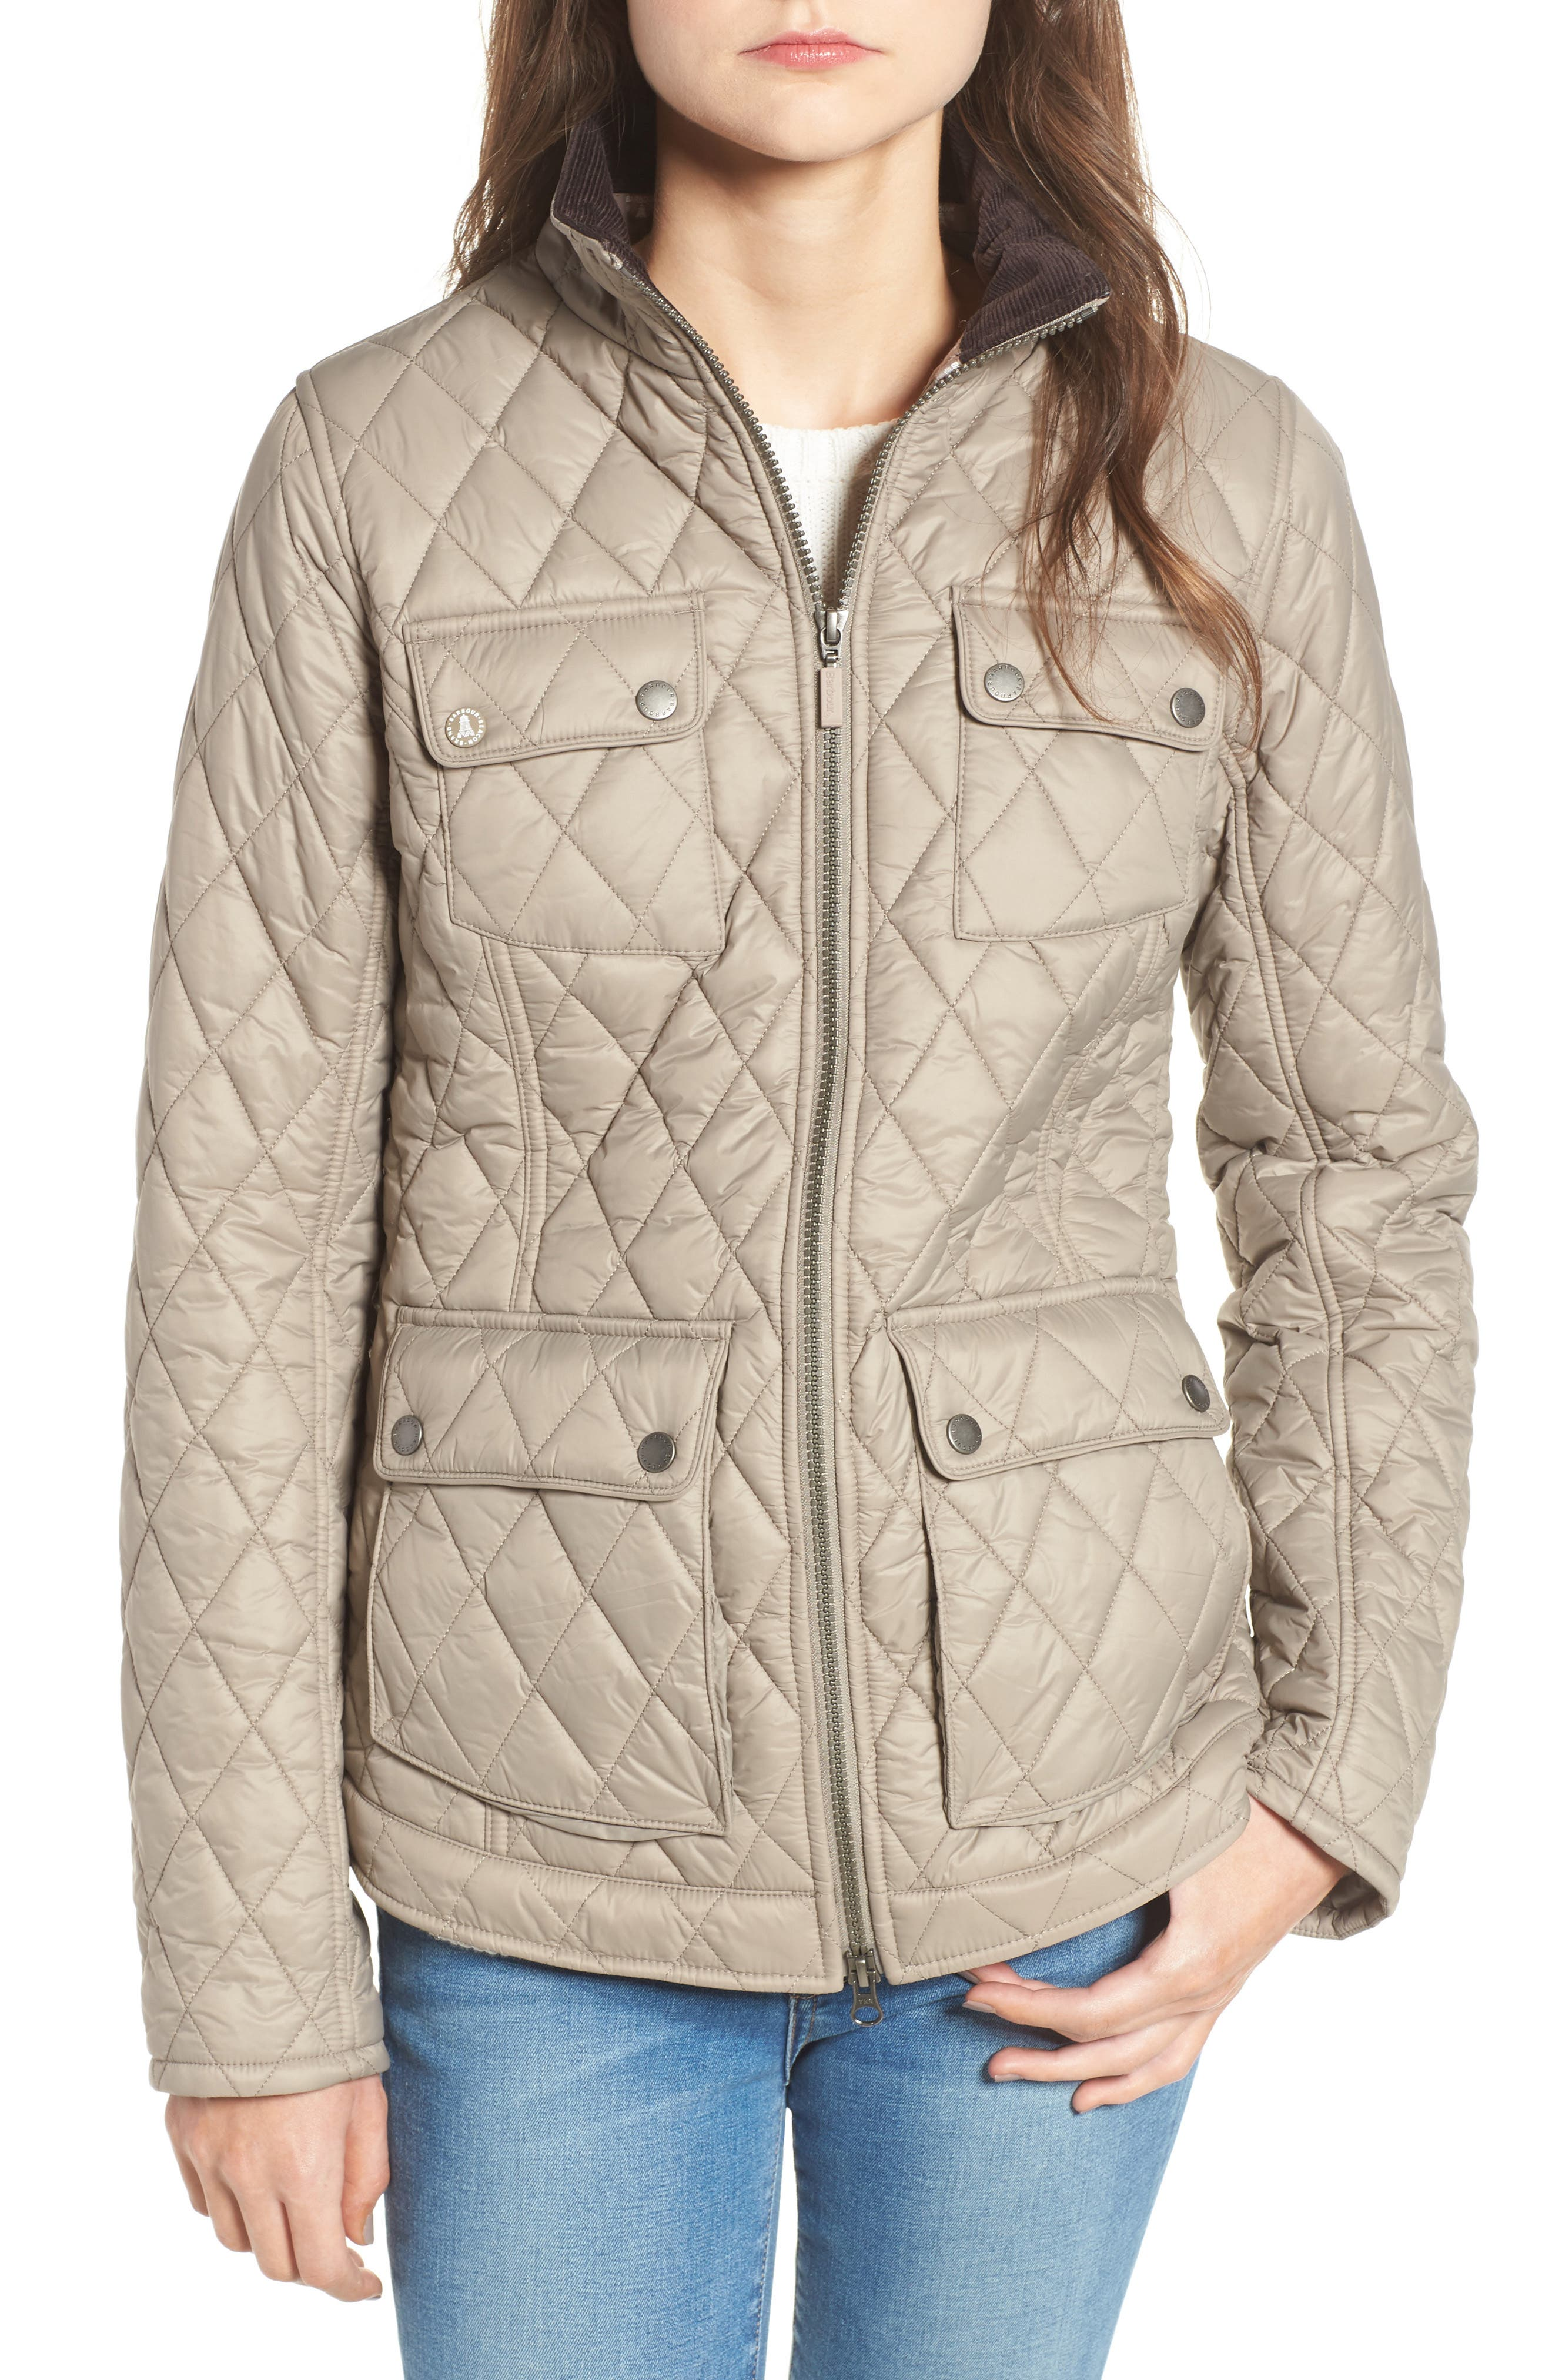 Alternate Image 1 Selected - Barbour Dolostone Quilted Jacket